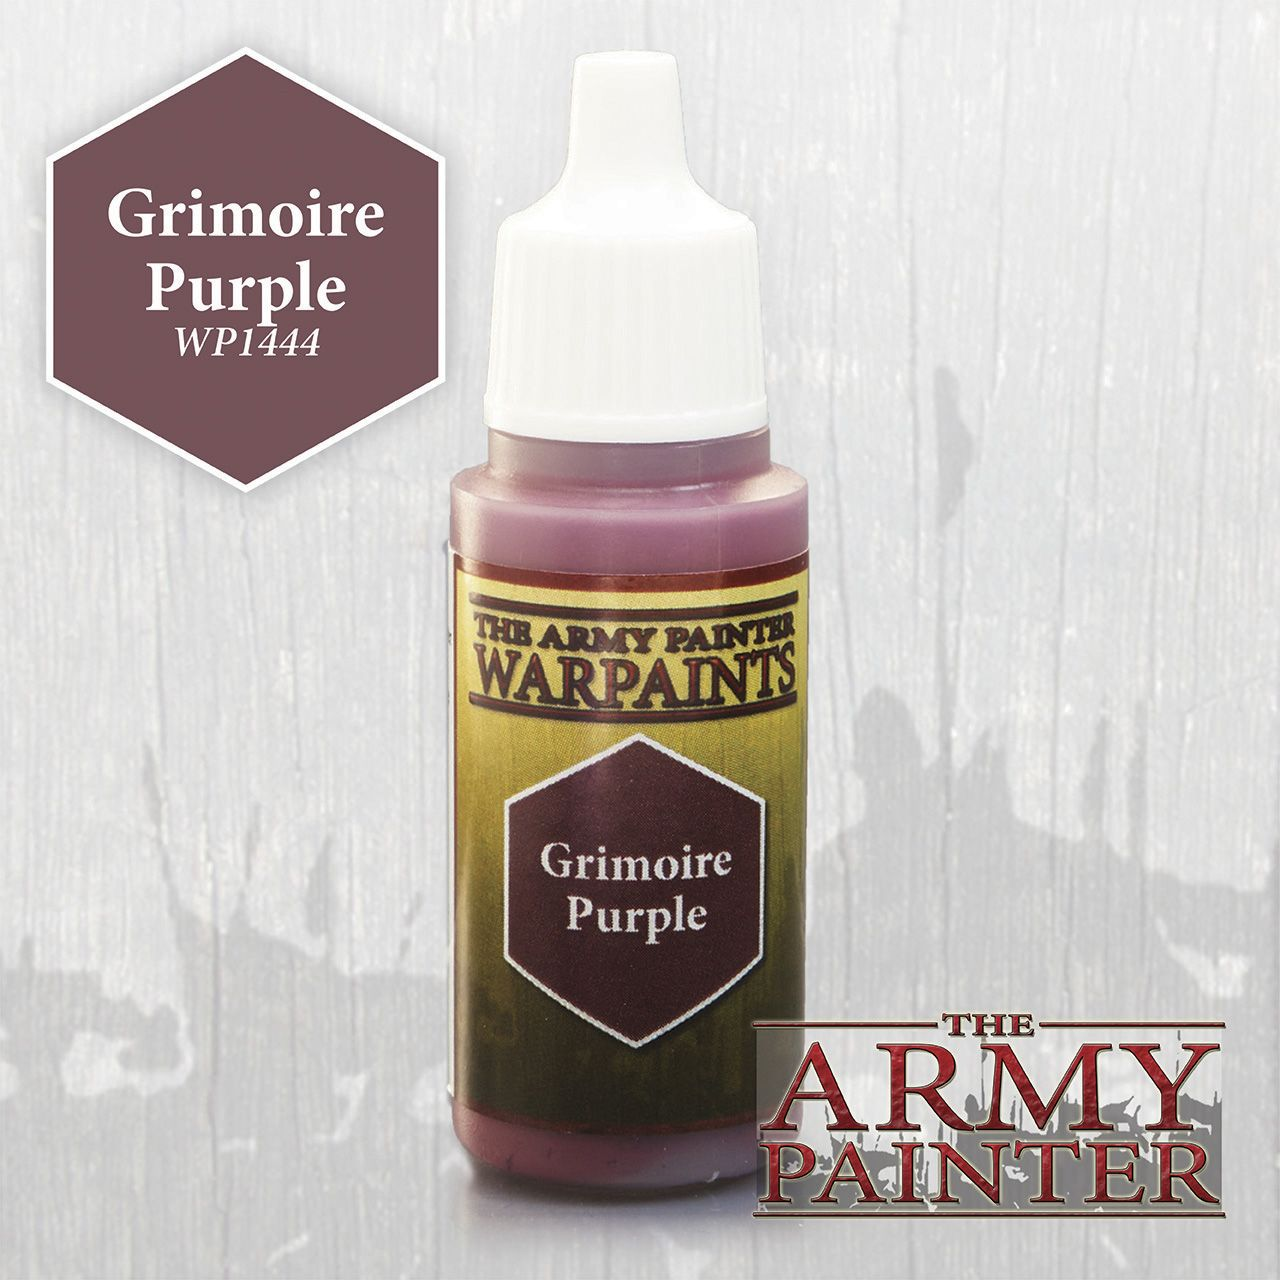 Grimoire Purple, 18ml